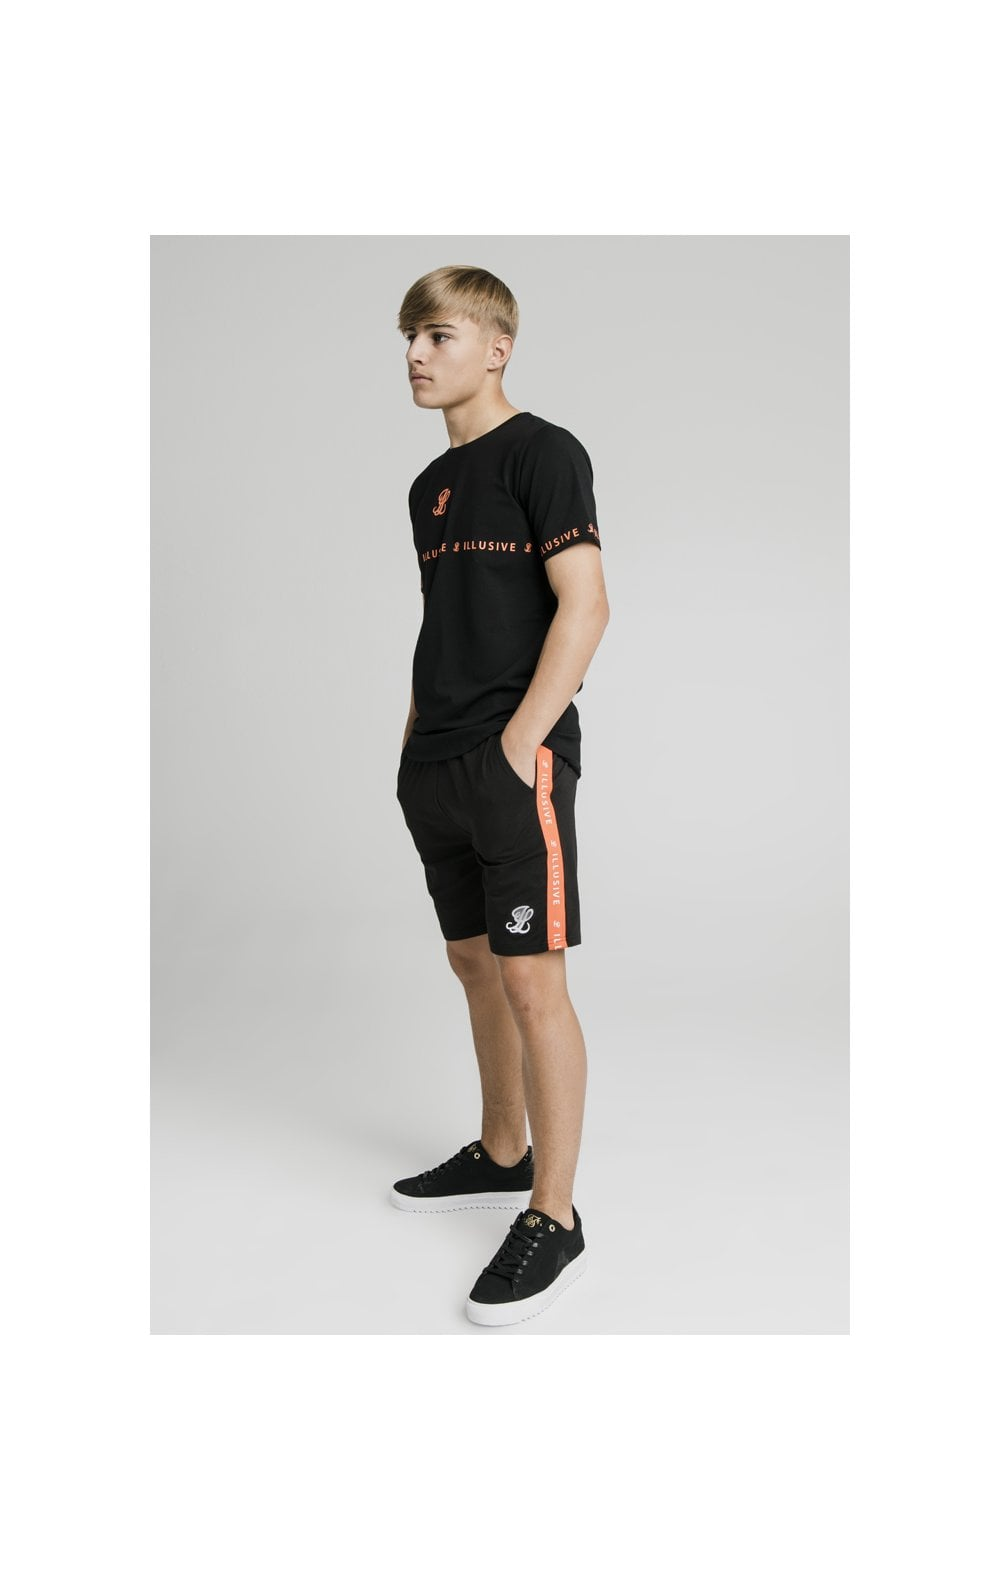 Illusive London Tape Tee - Black (2)